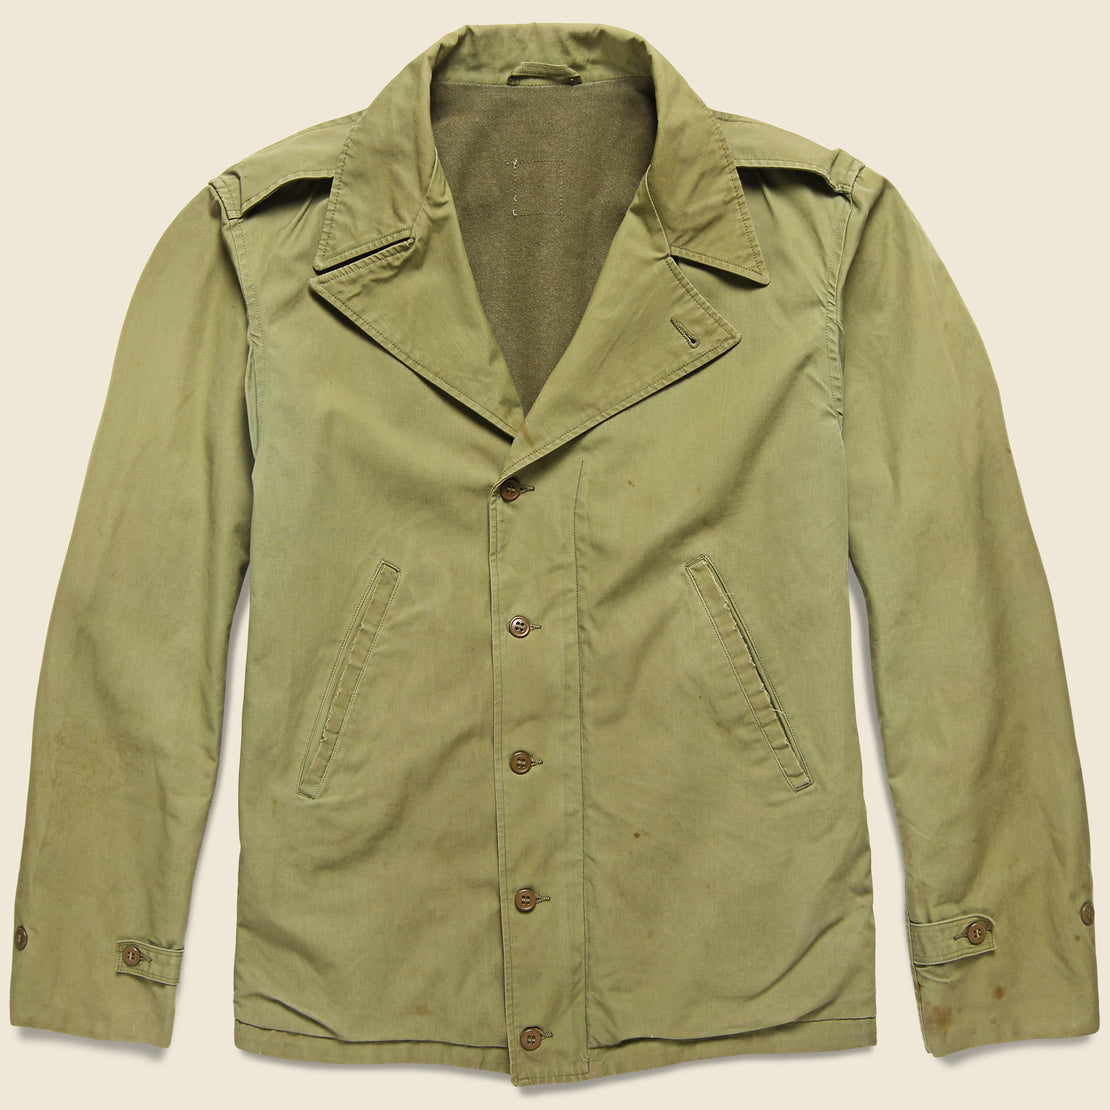 Vintage WWII Air Force Utility Jacket - Military Green